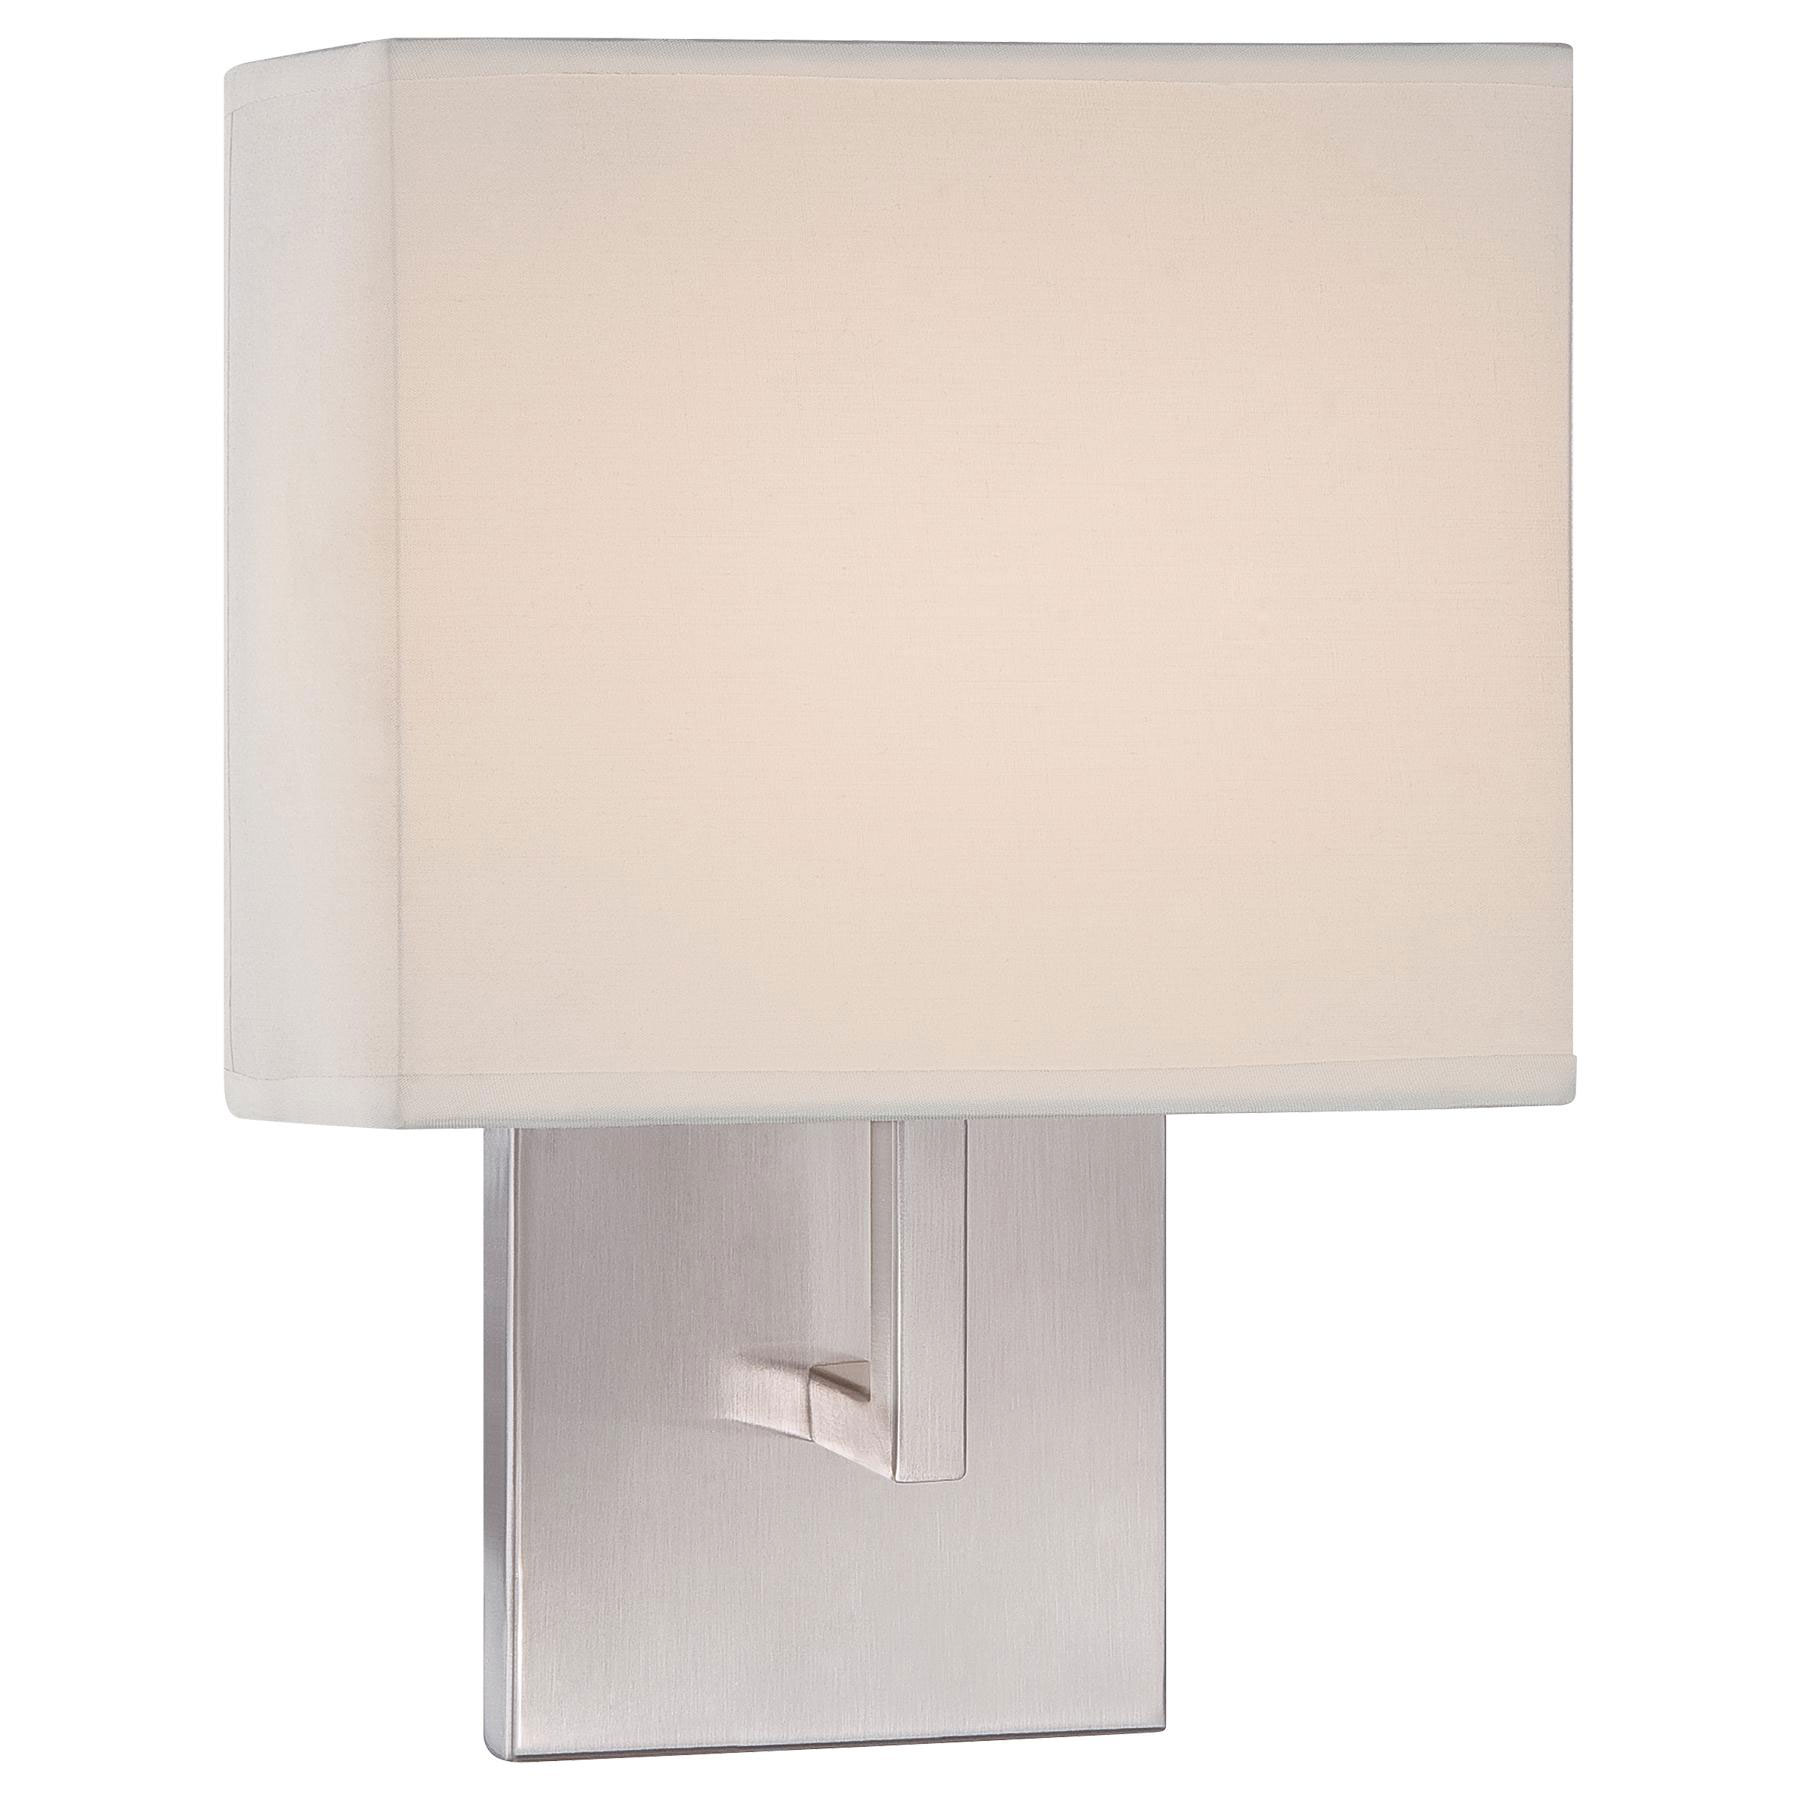 P470 Led Wall Sconce By George Kovacs